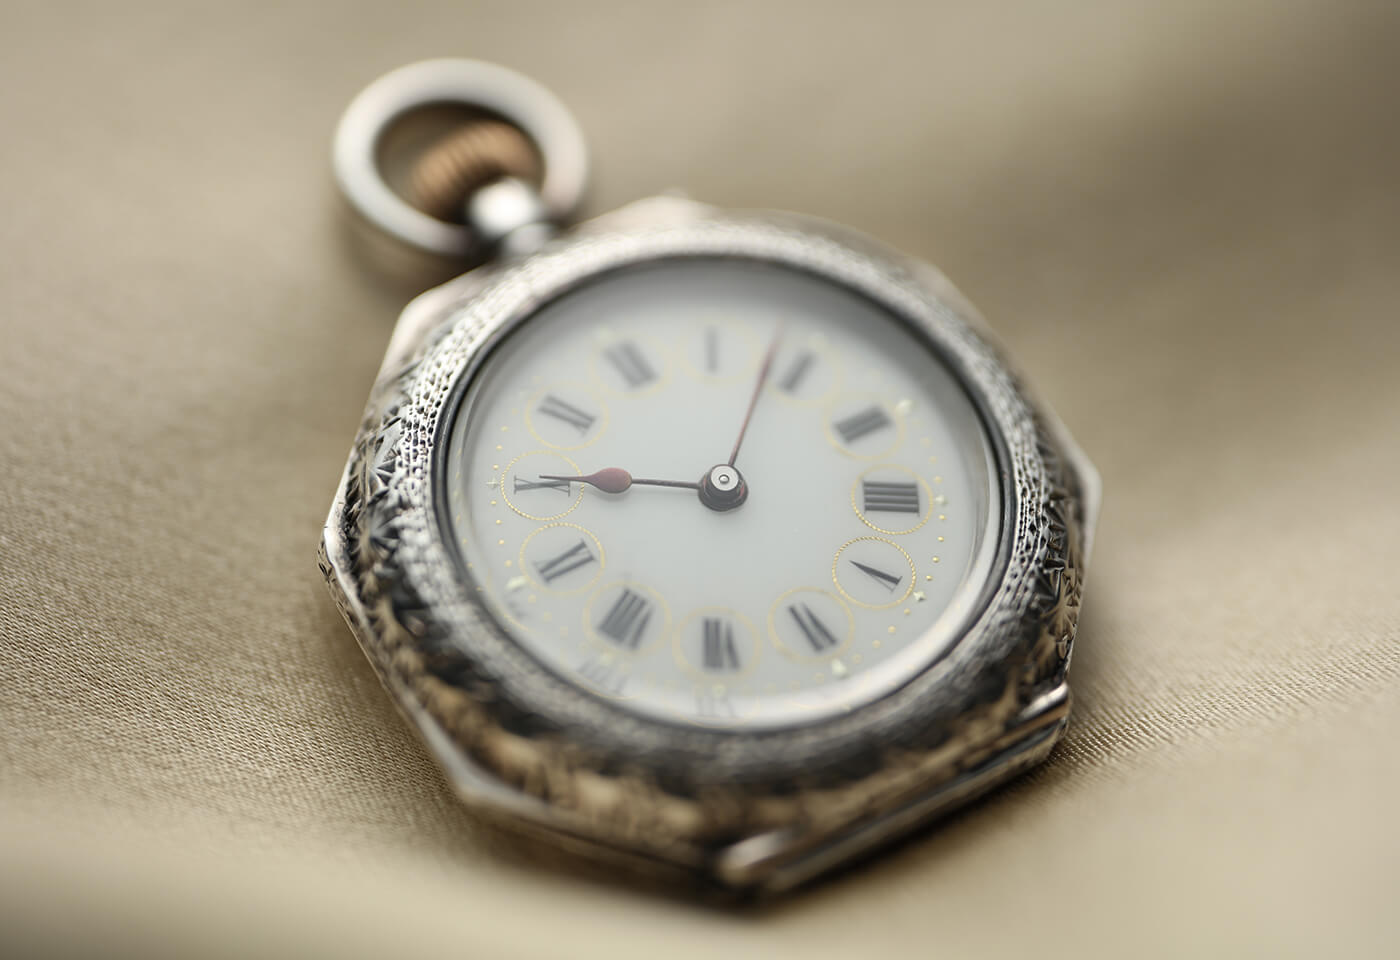 Pocket watch sample image taken with TS-E 50mm f/2.8L Macro Tilt Shift